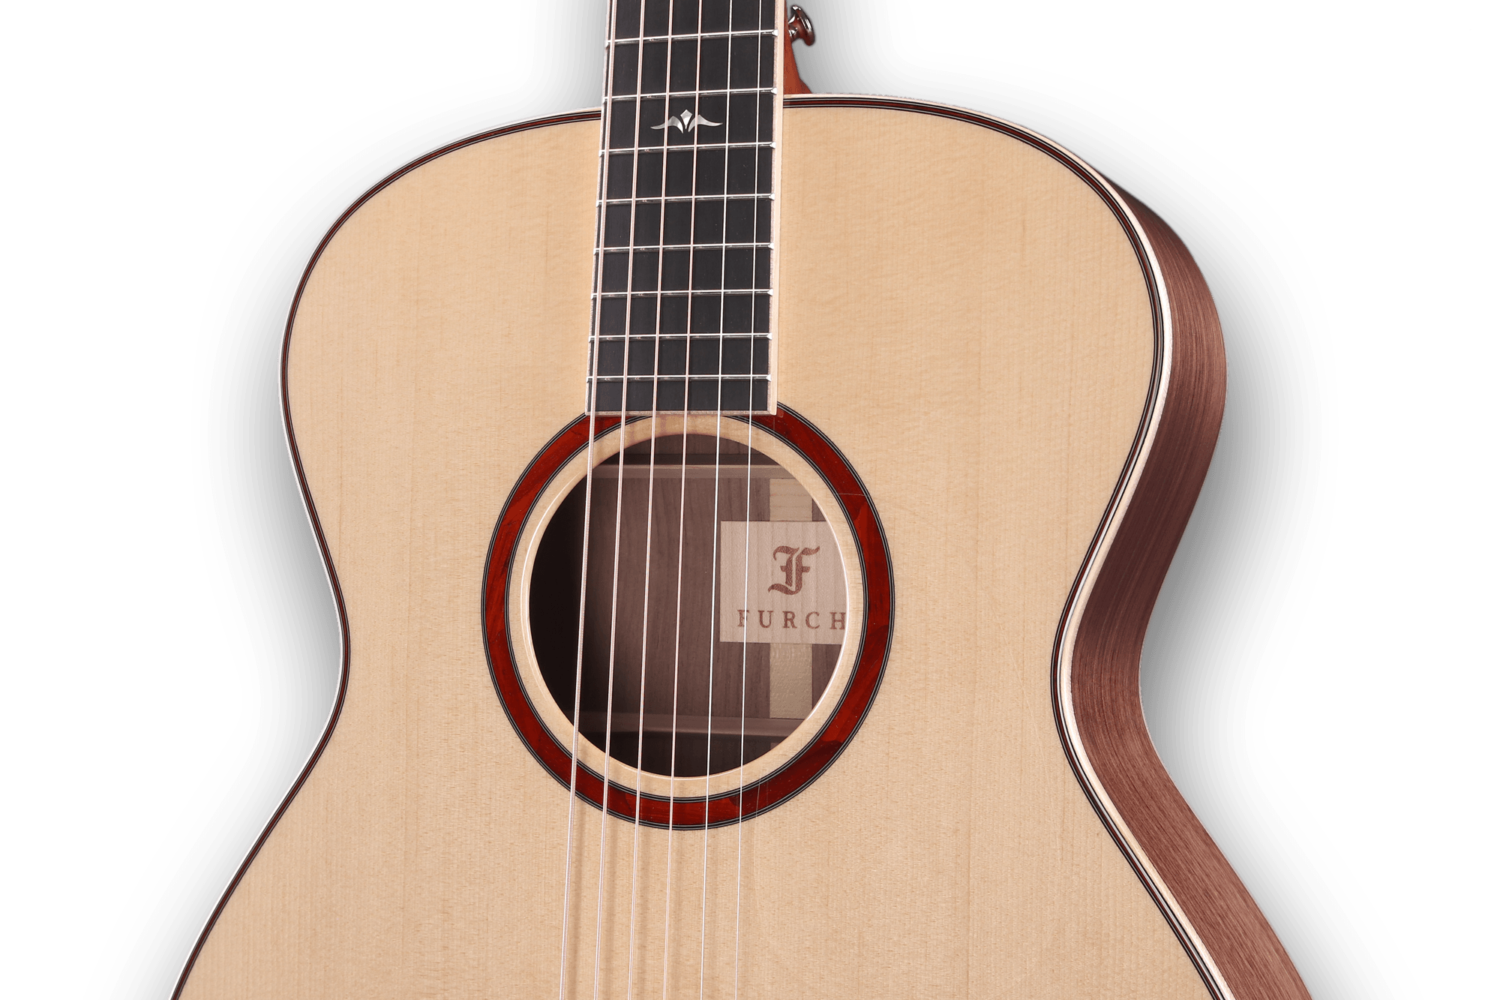 2019 Orange OM SW Rozeta Furch Guitars